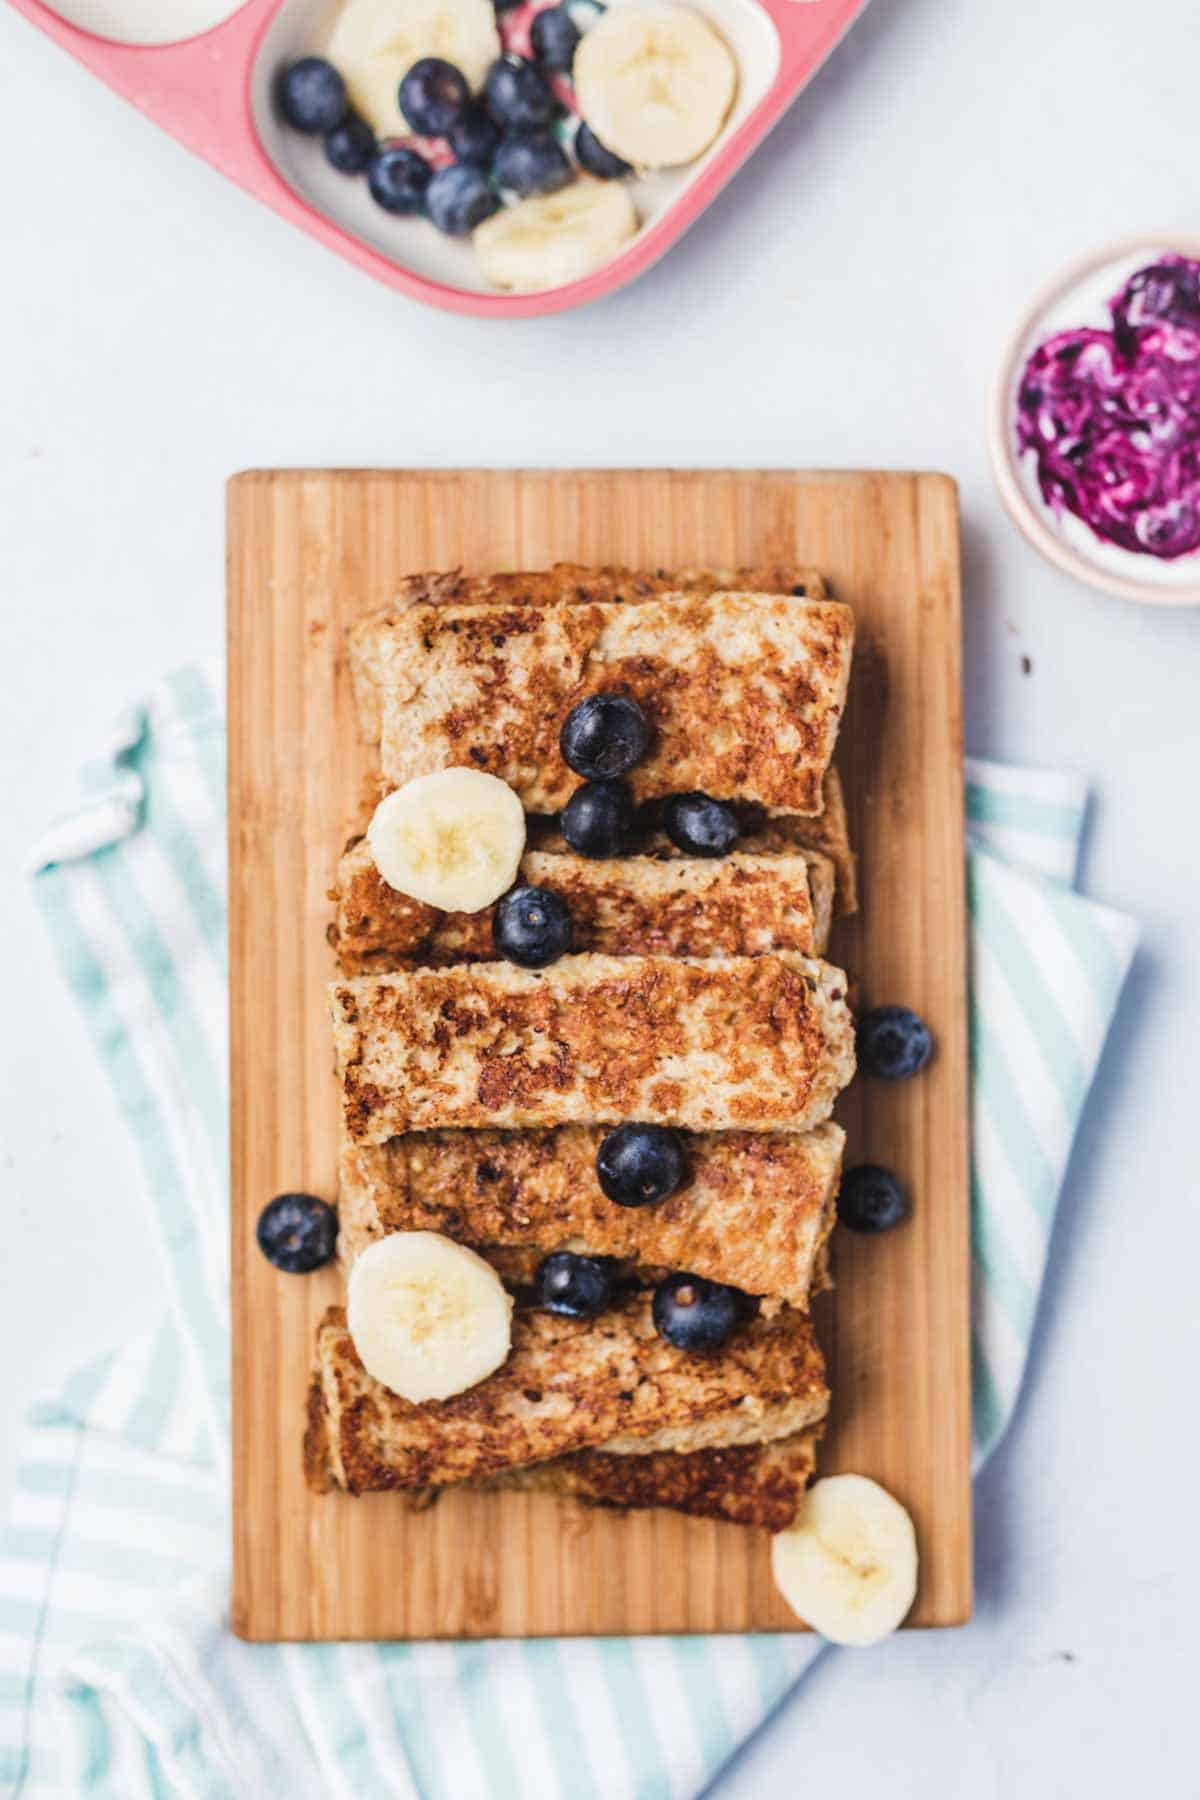 Overhead view of a serving board with a stack of French toast sticks.